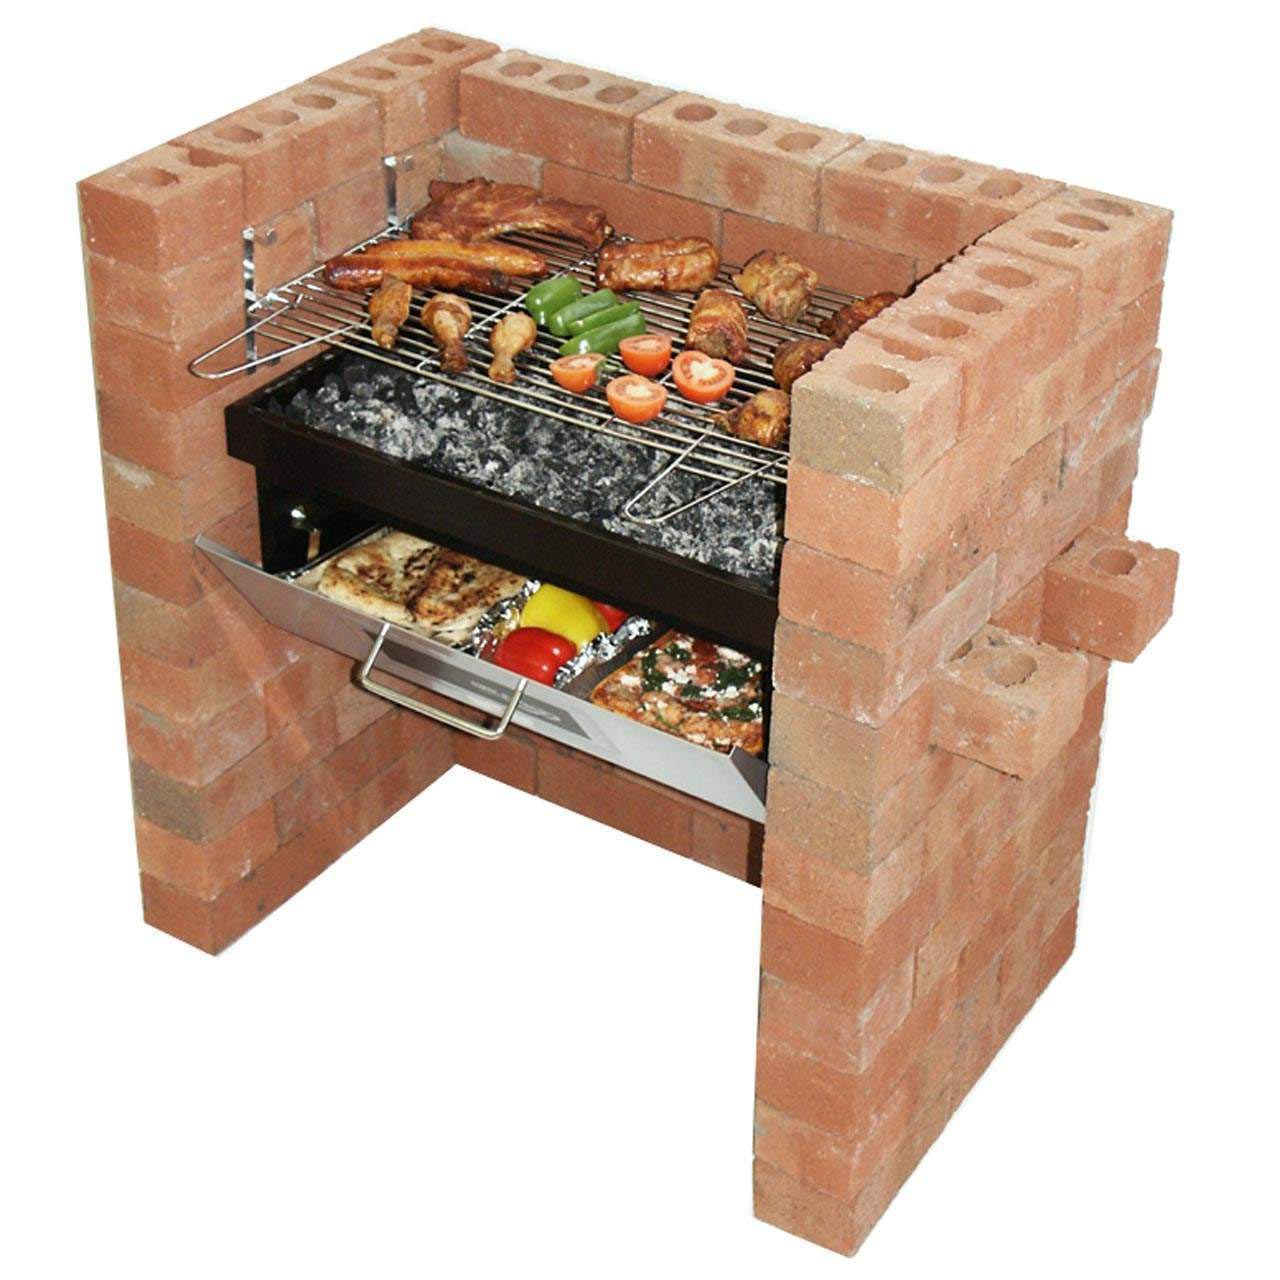 Bbq Grill Design Ideas bbq grill design ideas 30 grill gazebo ideas to fire up your summer barbecues Diy Brick Bbq Grill Kit Brick Bbq Grill Kit Brick Bbq Grill Plans